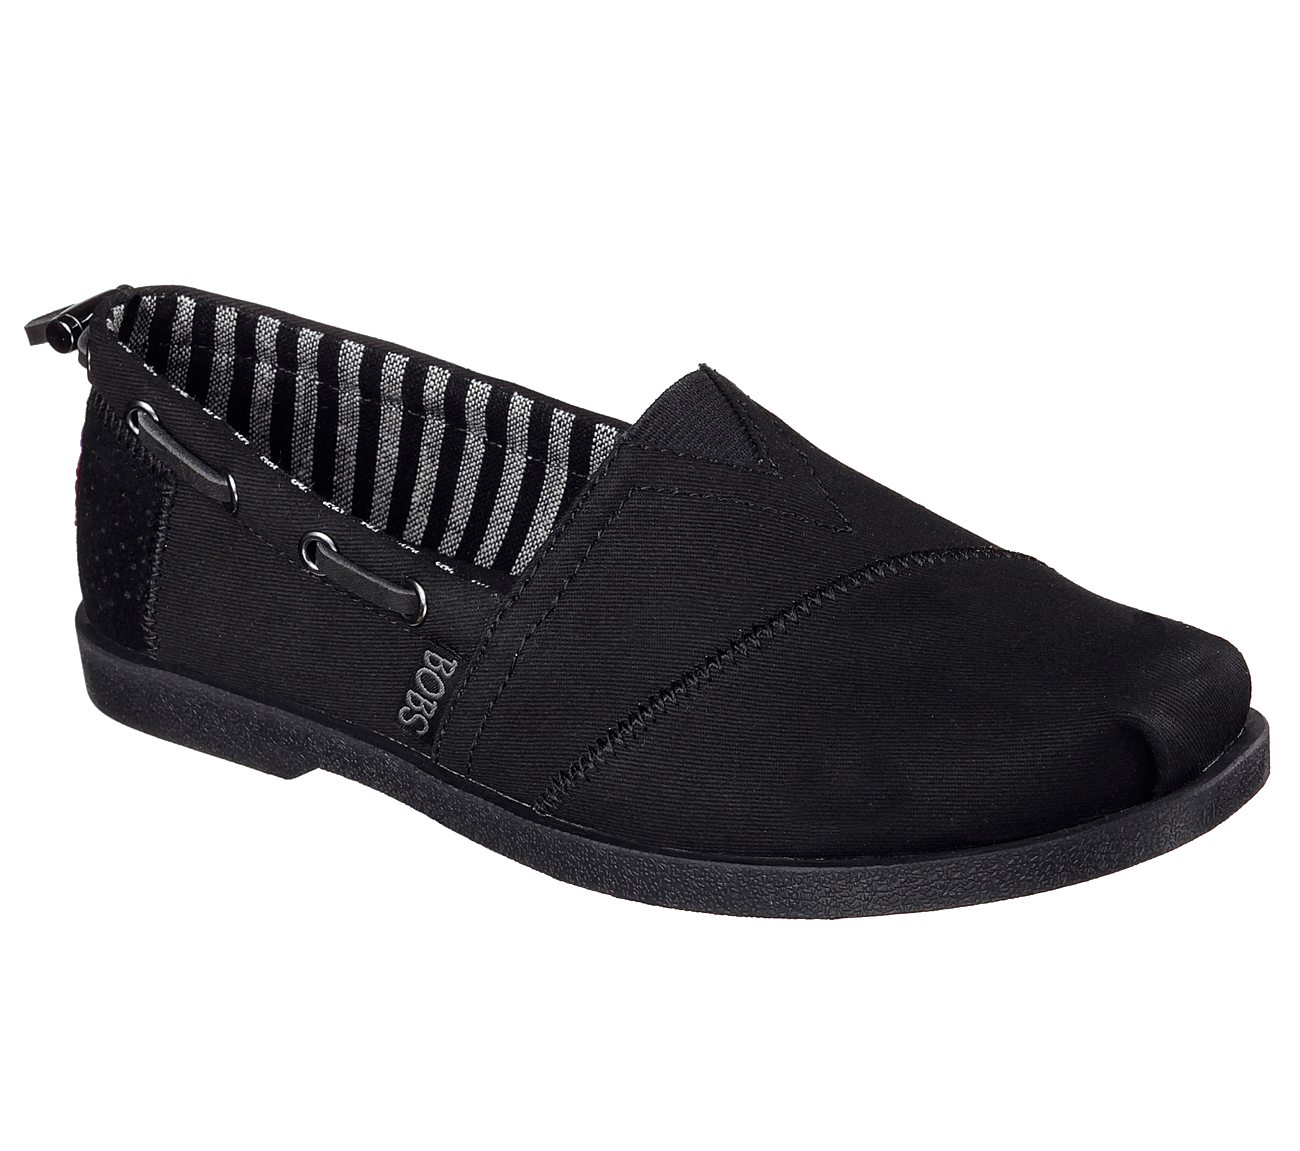 Skechers Chilly Skechers- Black flats